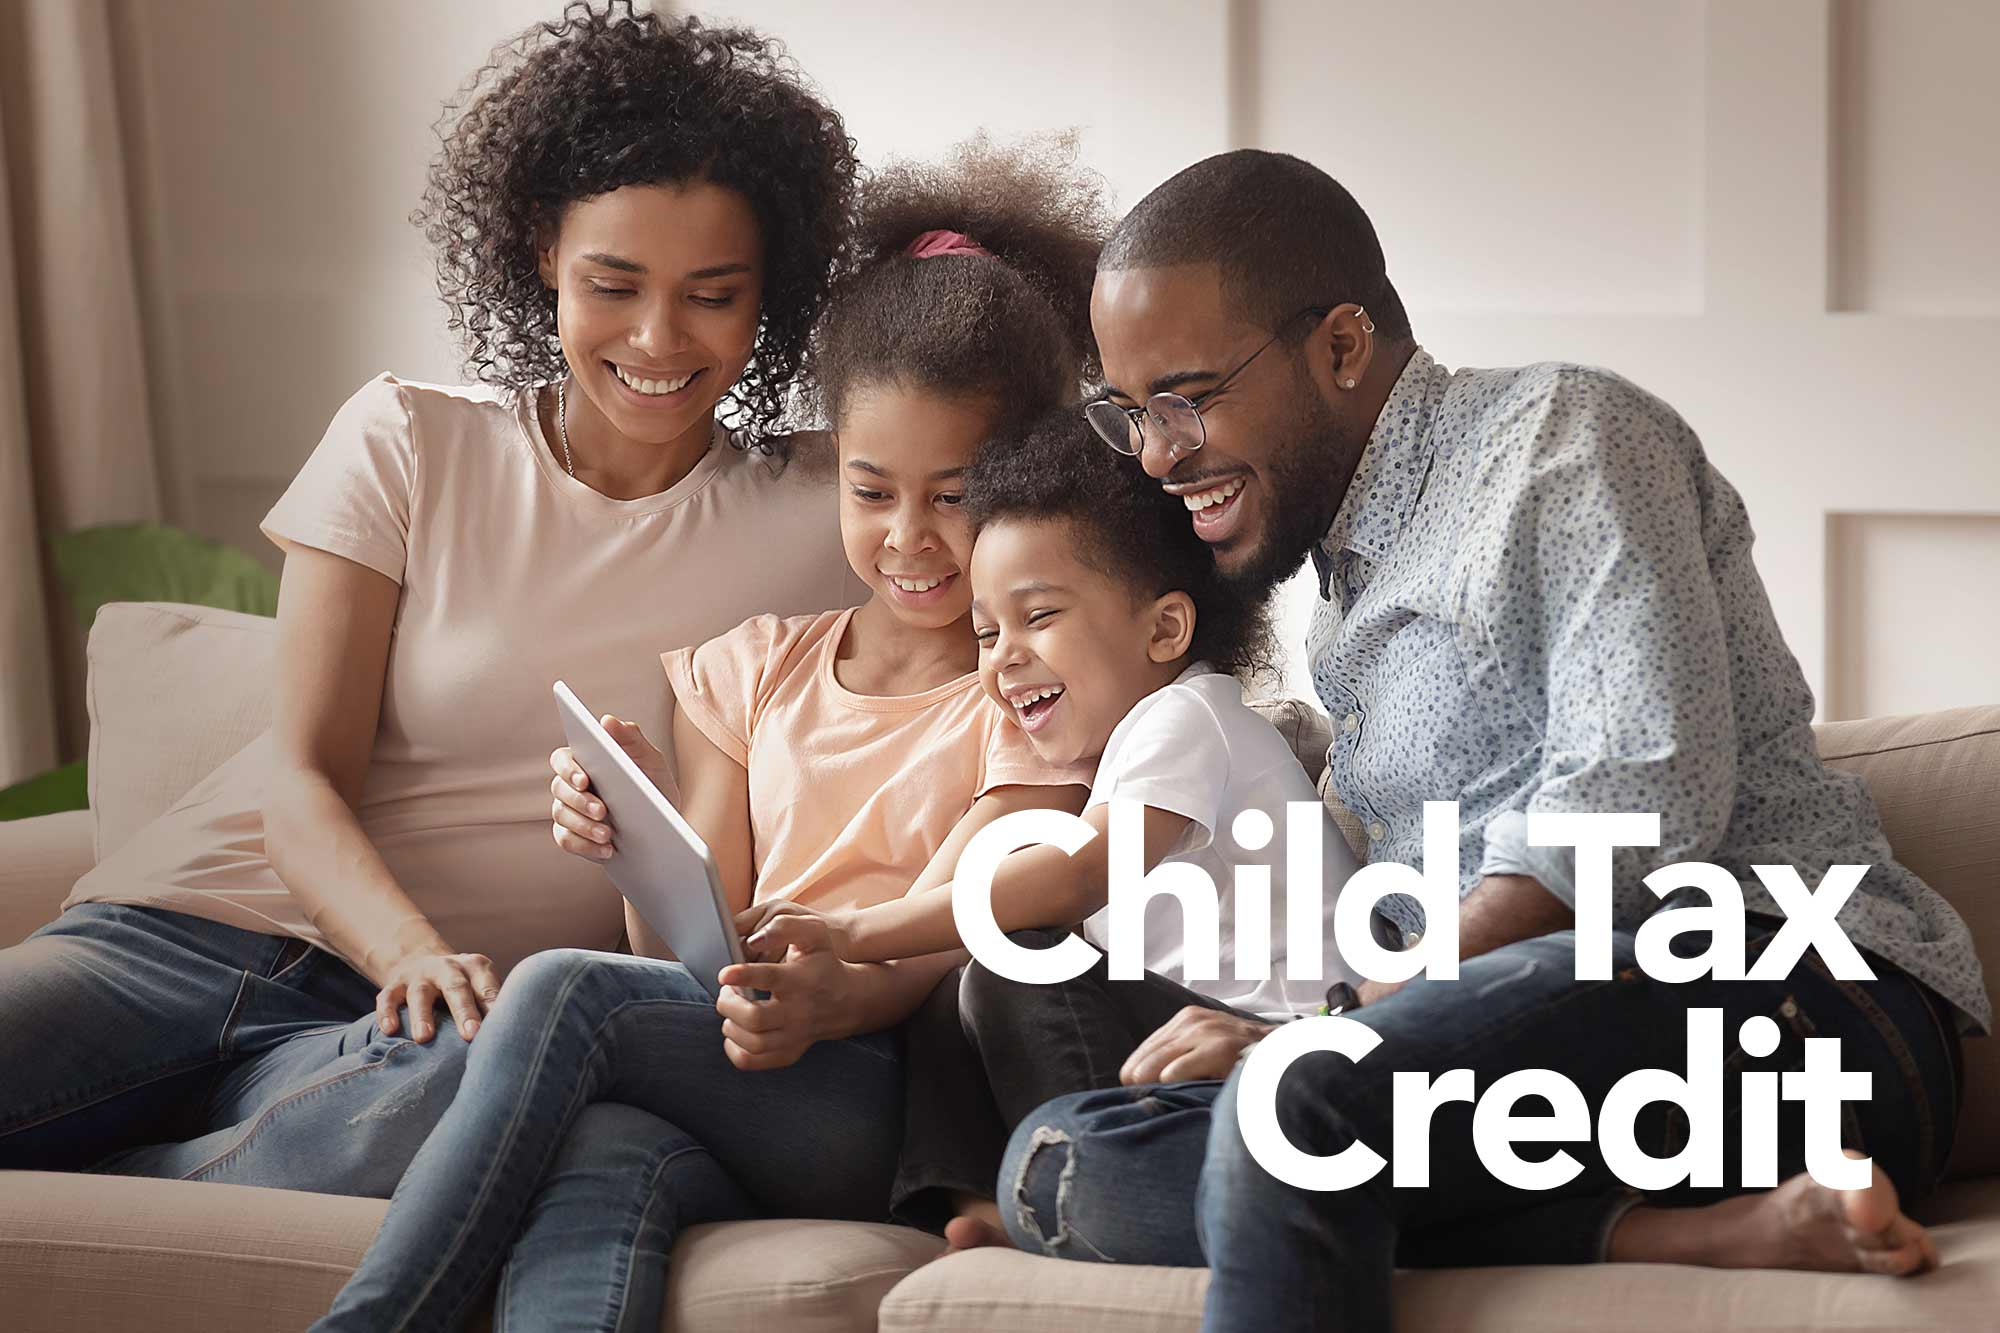 Take advantage of the Child Tax Credit and get back $2,000